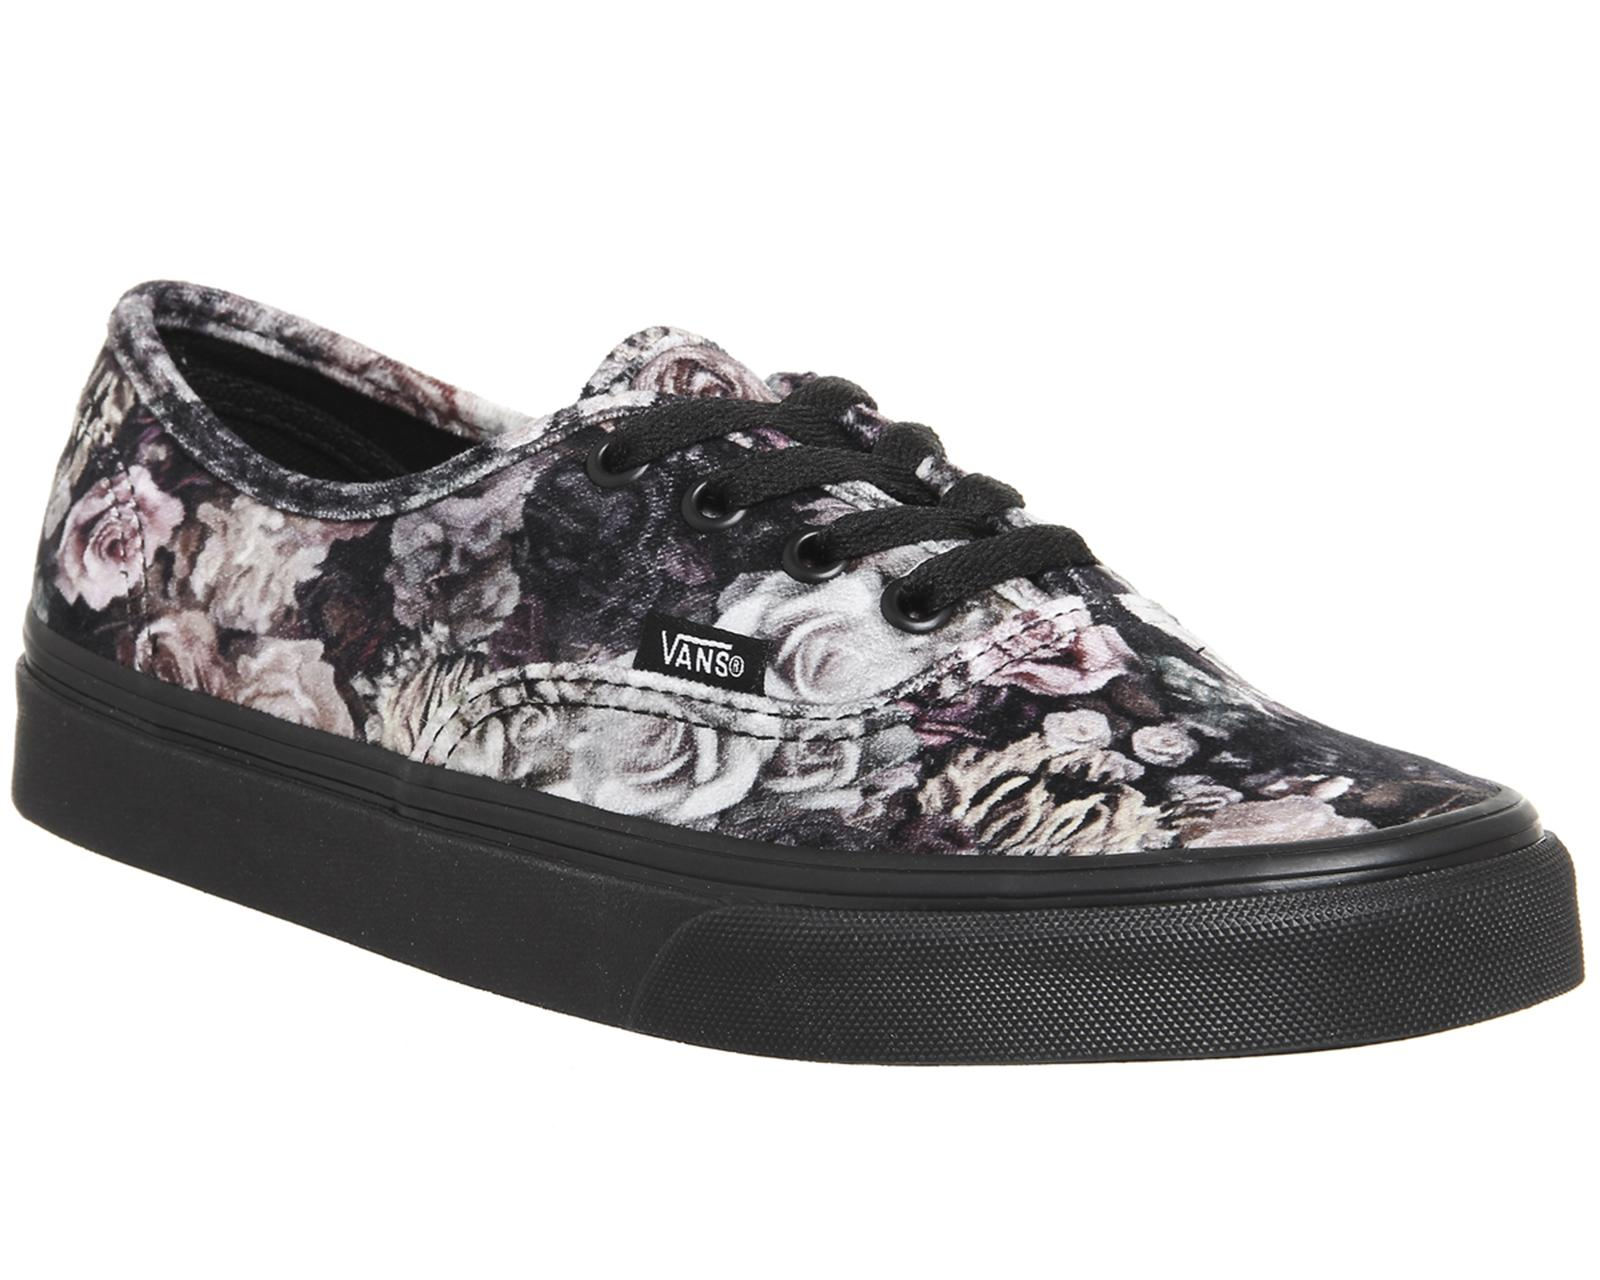 588c1b9877 Lyst - Vans Authentic Trainers in Black